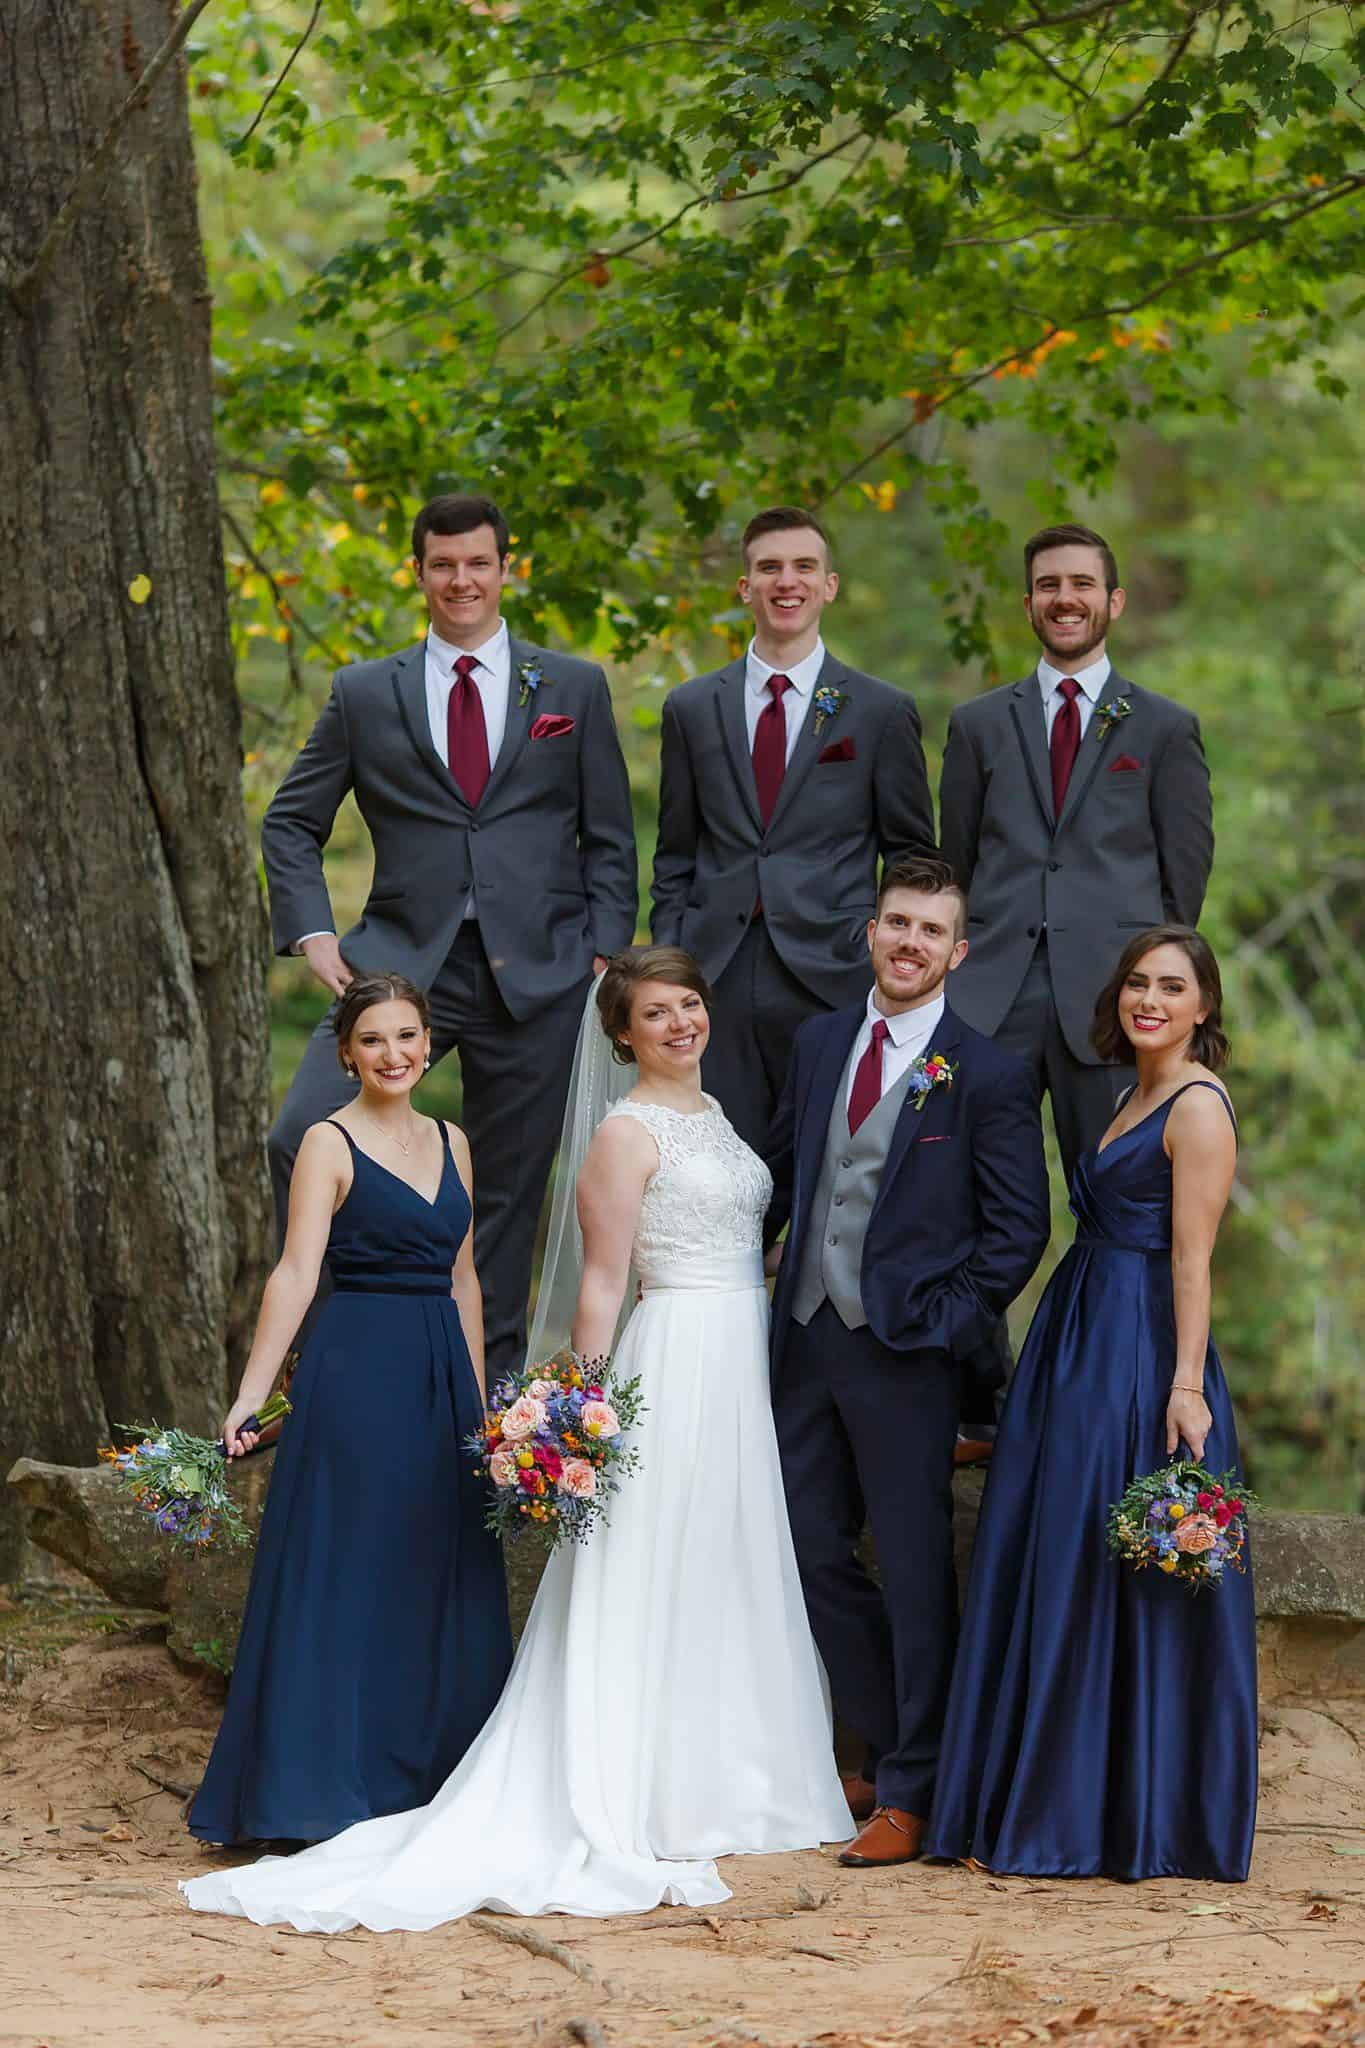 Navy blue and dark gray bridal party colors